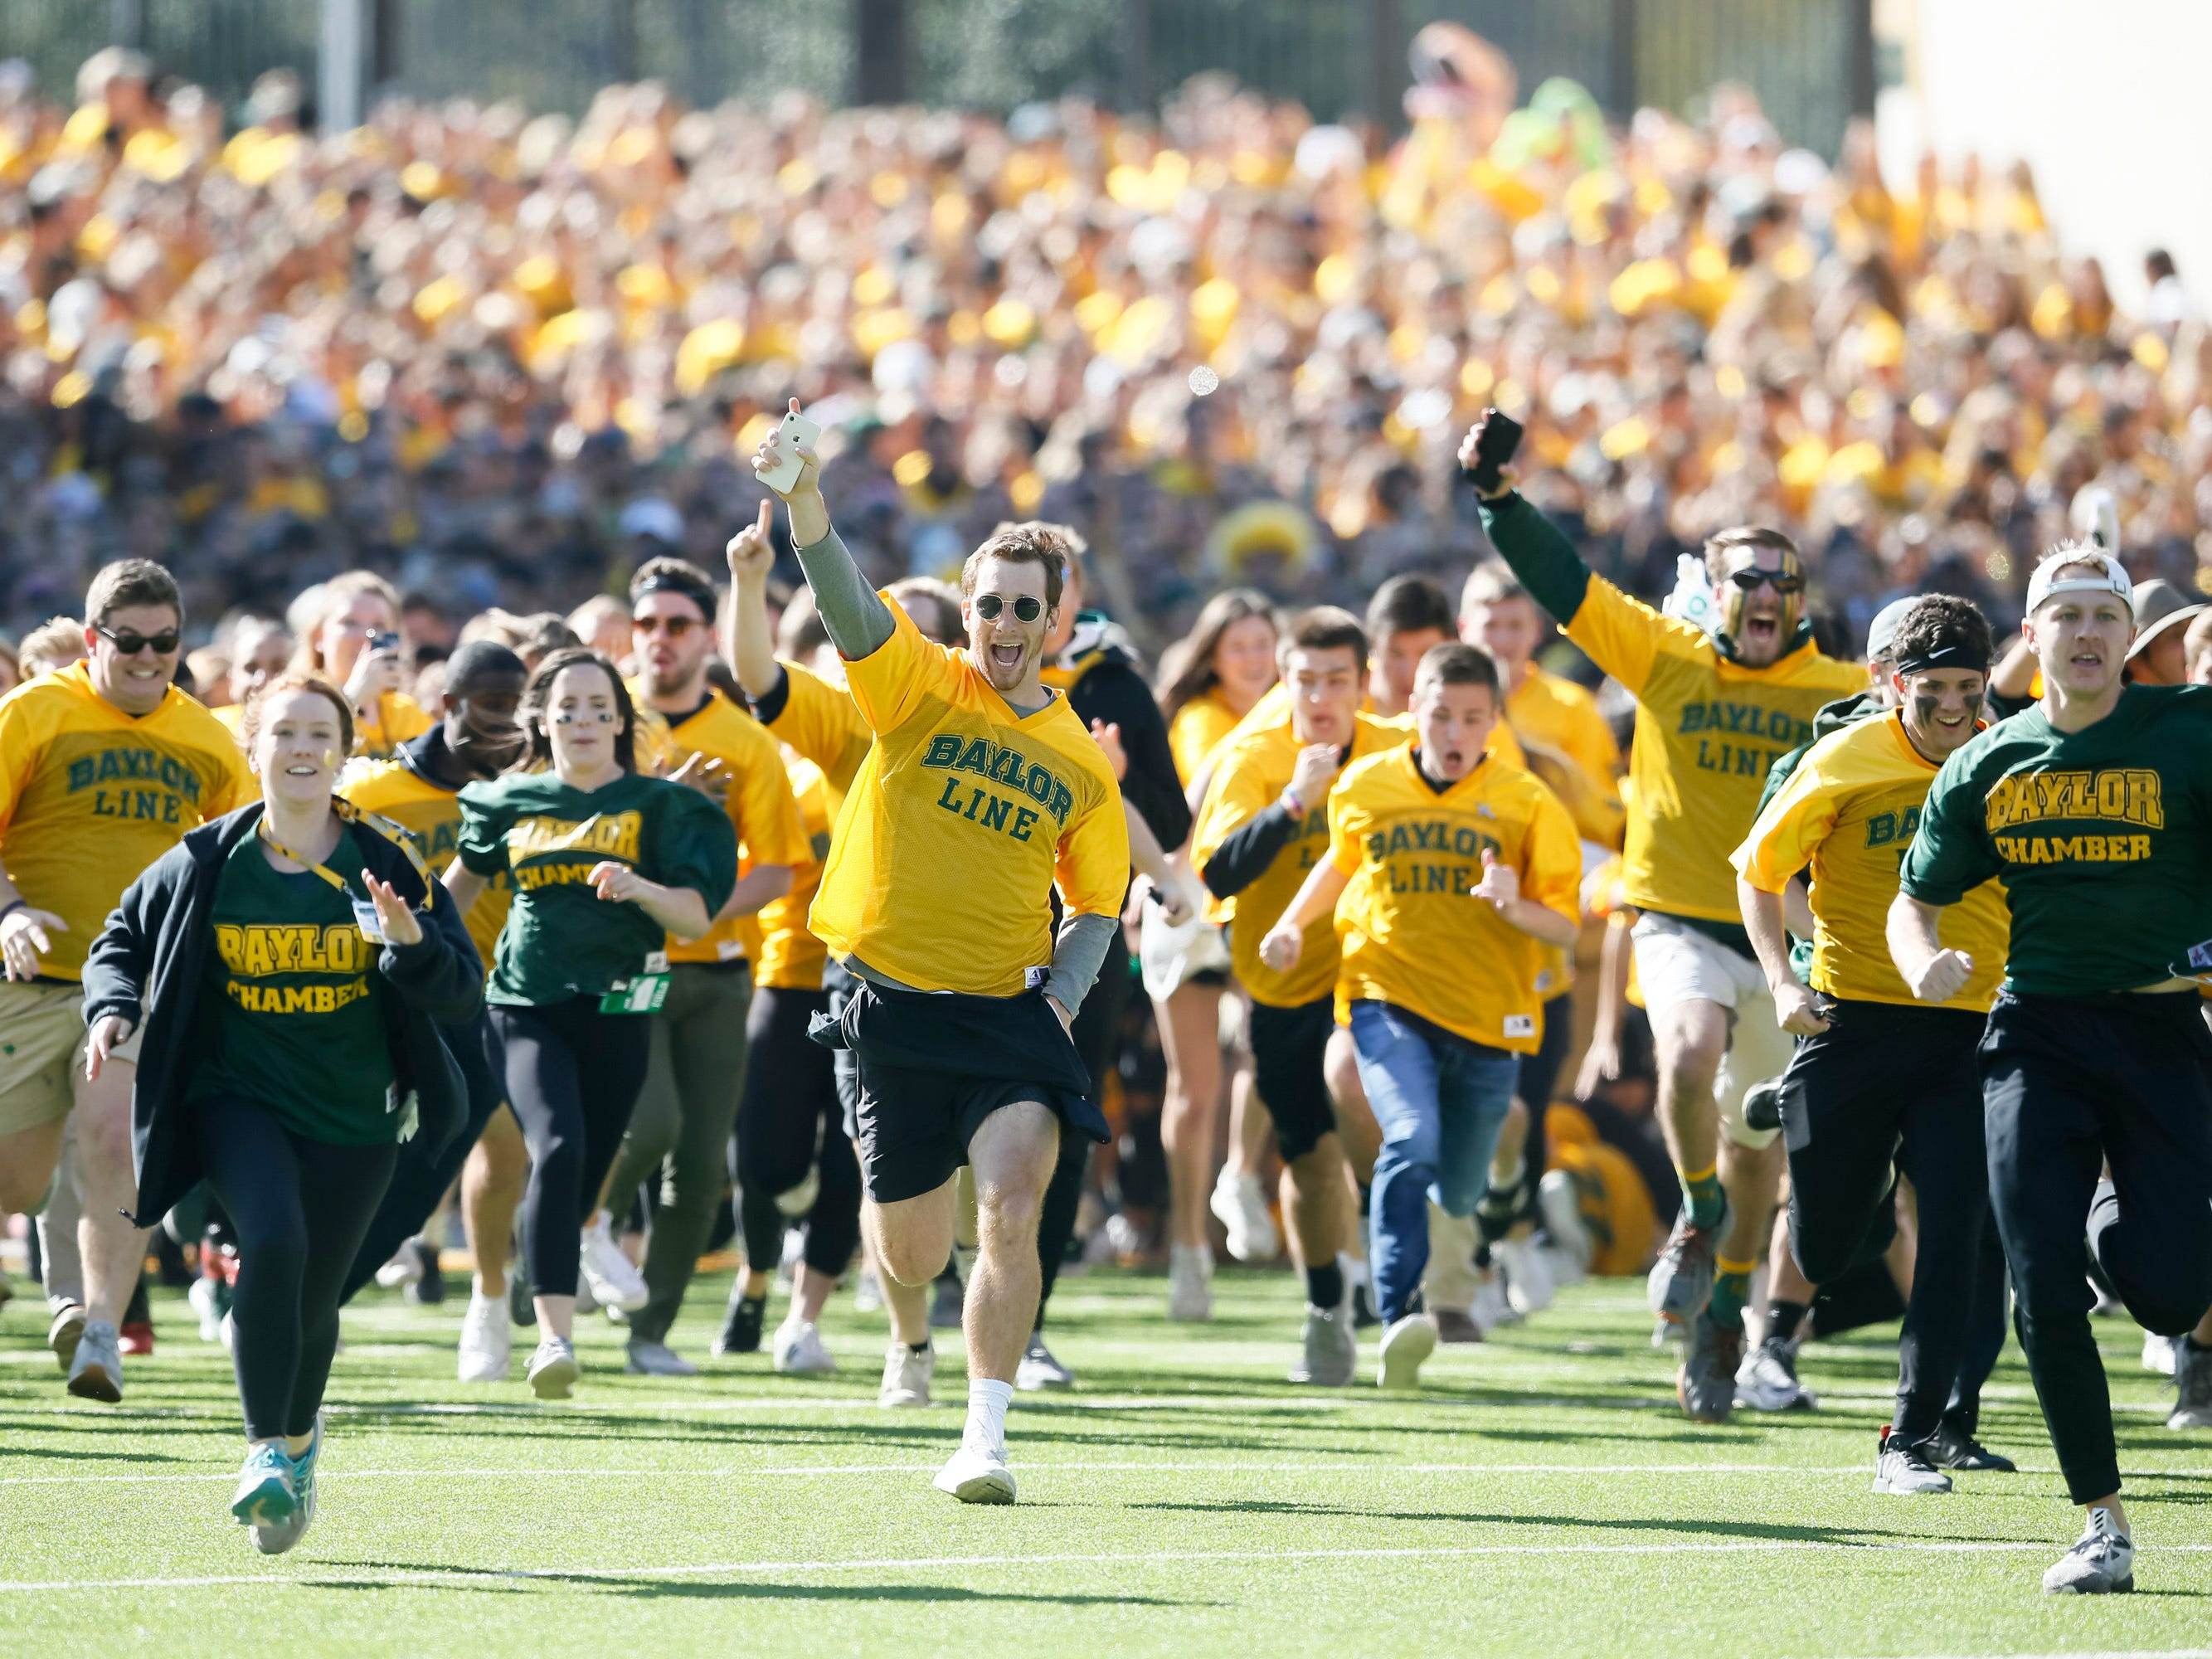 Week 12: The Baylor Line take the field prior to a game against the TCU Horned Frogs at McLane Stadium.